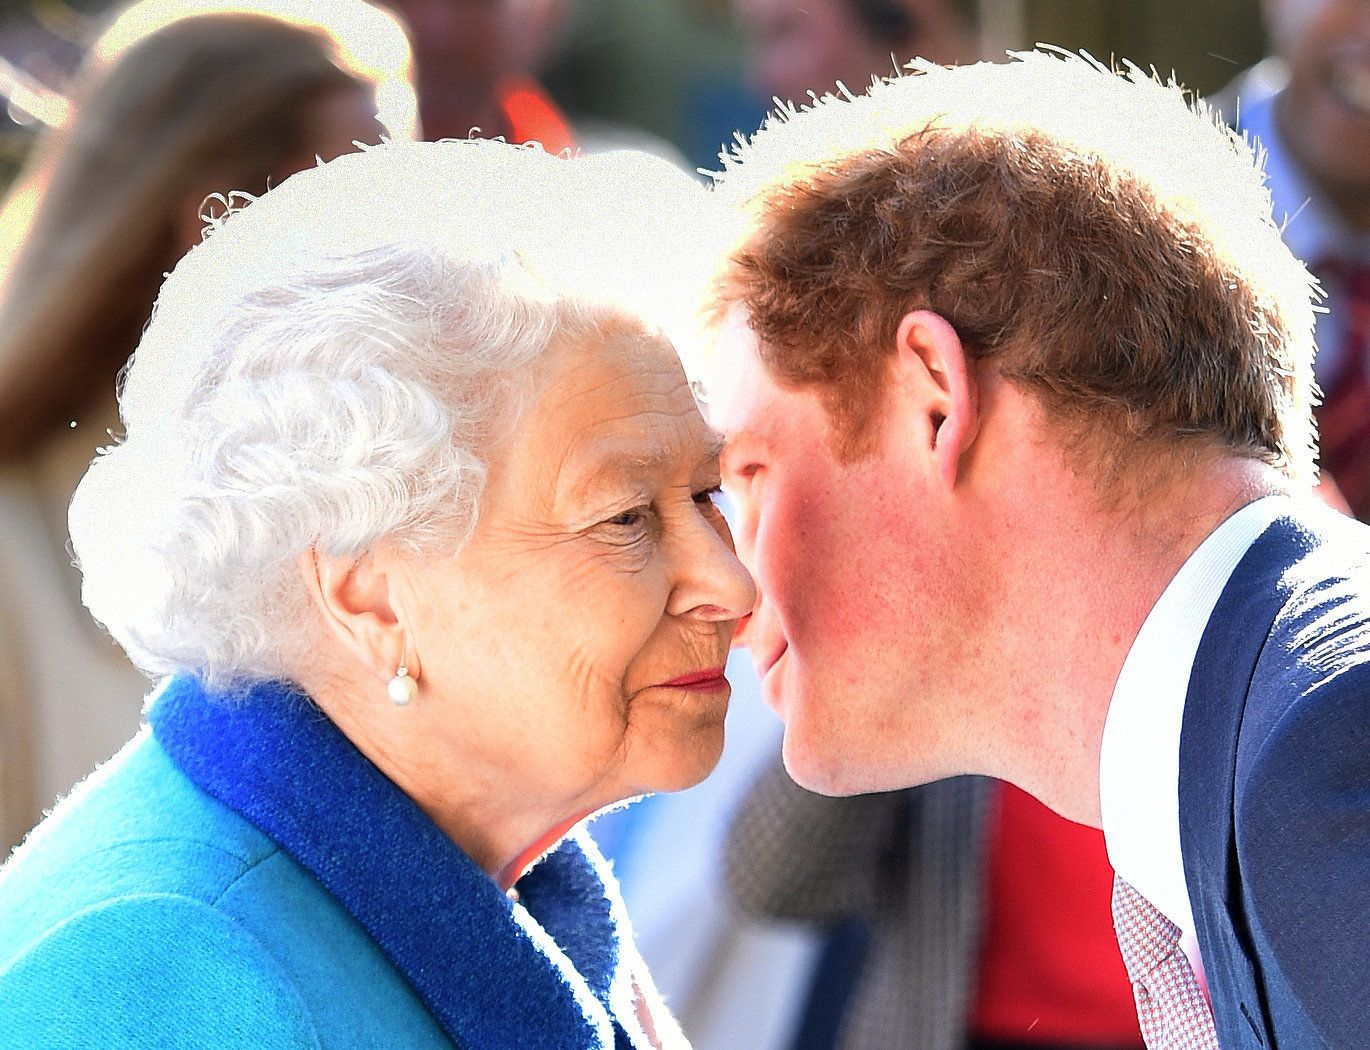 Queen Elizabeth II greets her grandson Prince Harry at the Sentebale Garden as they attend the annual Chelsea Flower show at Royal Hospital Chelsea in London.